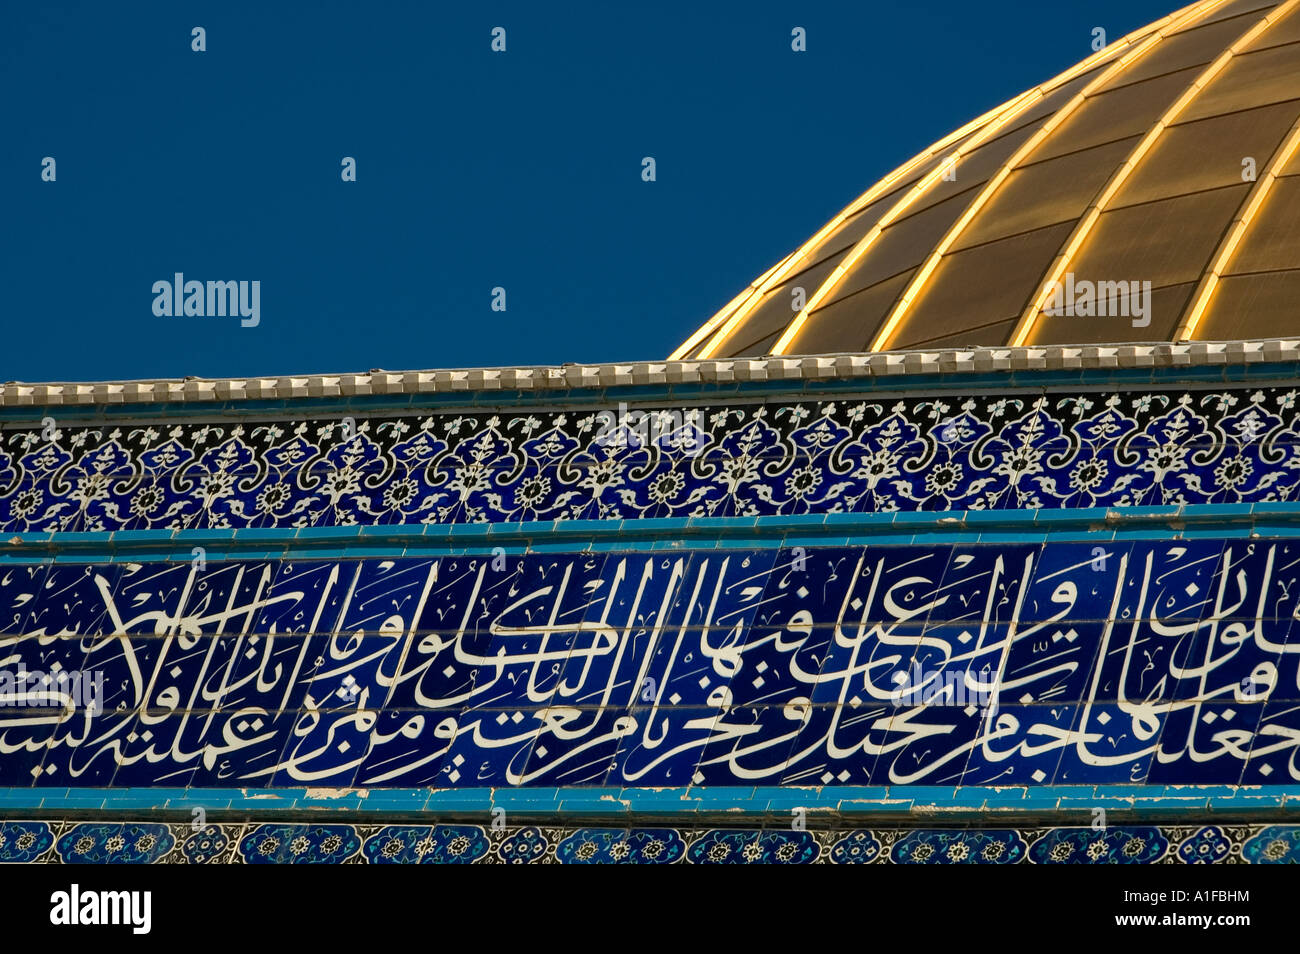 Quranic Verses In Arabic Calligraphy On Tiles Of Dome Of